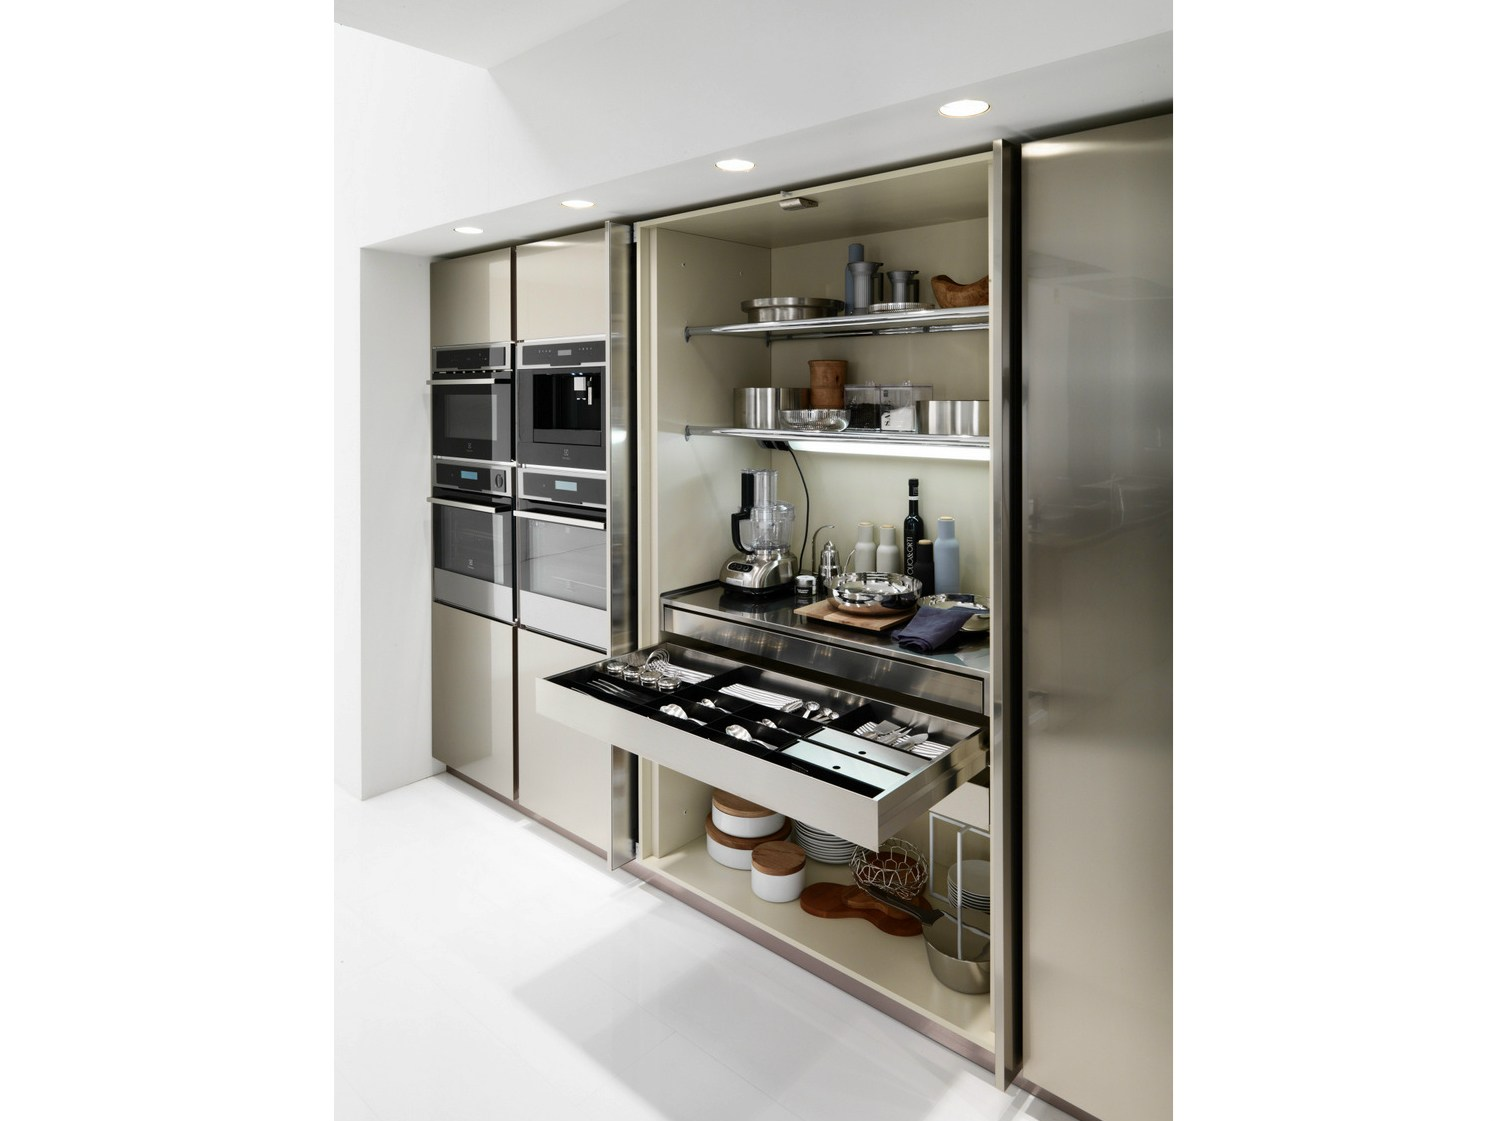 Cucina in acciaio inox filofree steel by euromobil design roberto gobbo - Cucina in acciaio inox ...